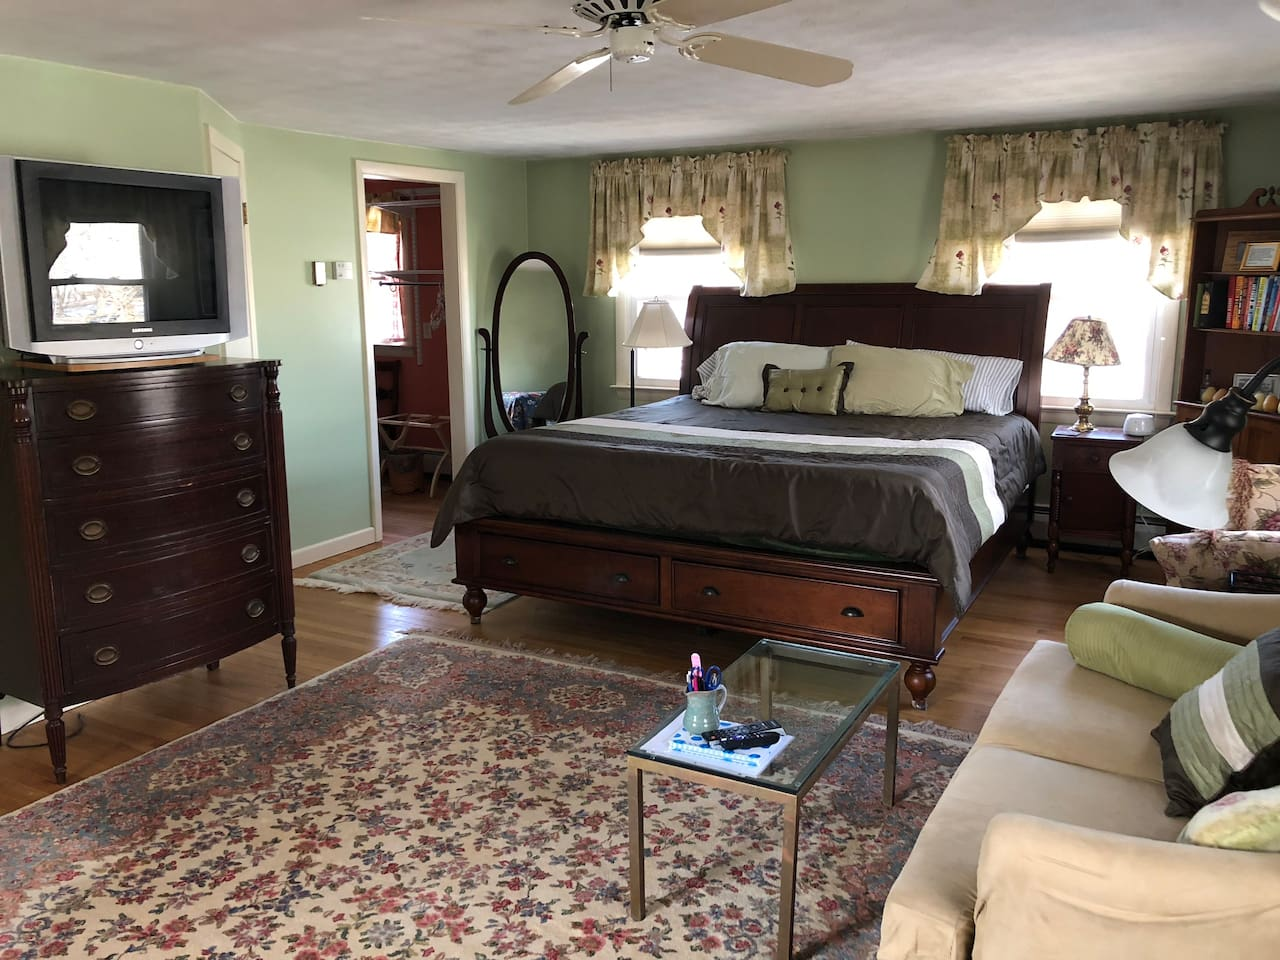 Our guest suite includes the king size bed, loveseat and walk-in closet shown here